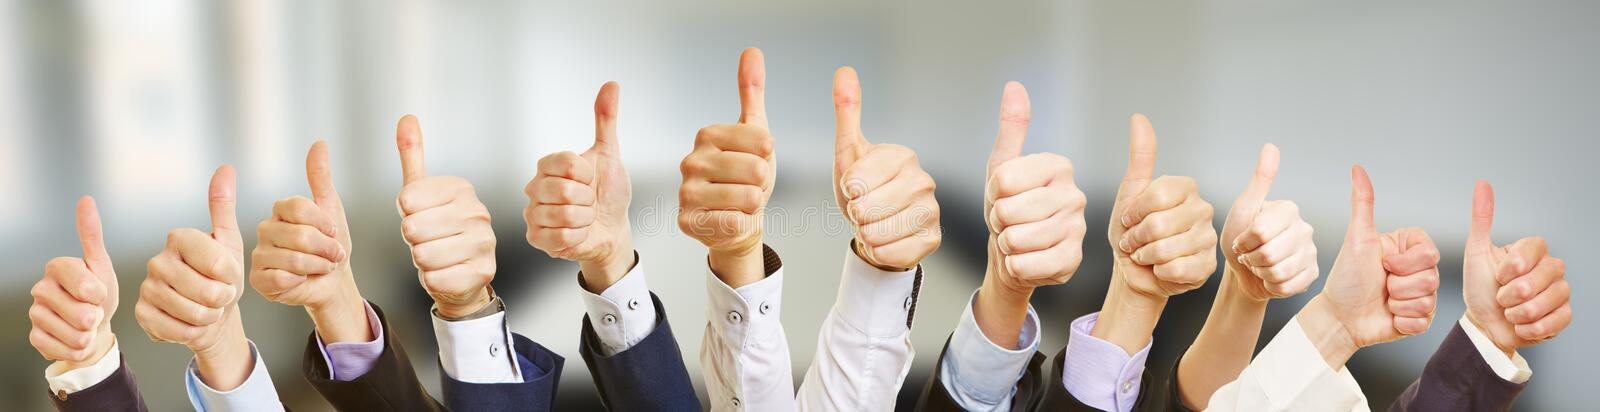 Many business people holding thumbs up royalty free stock image